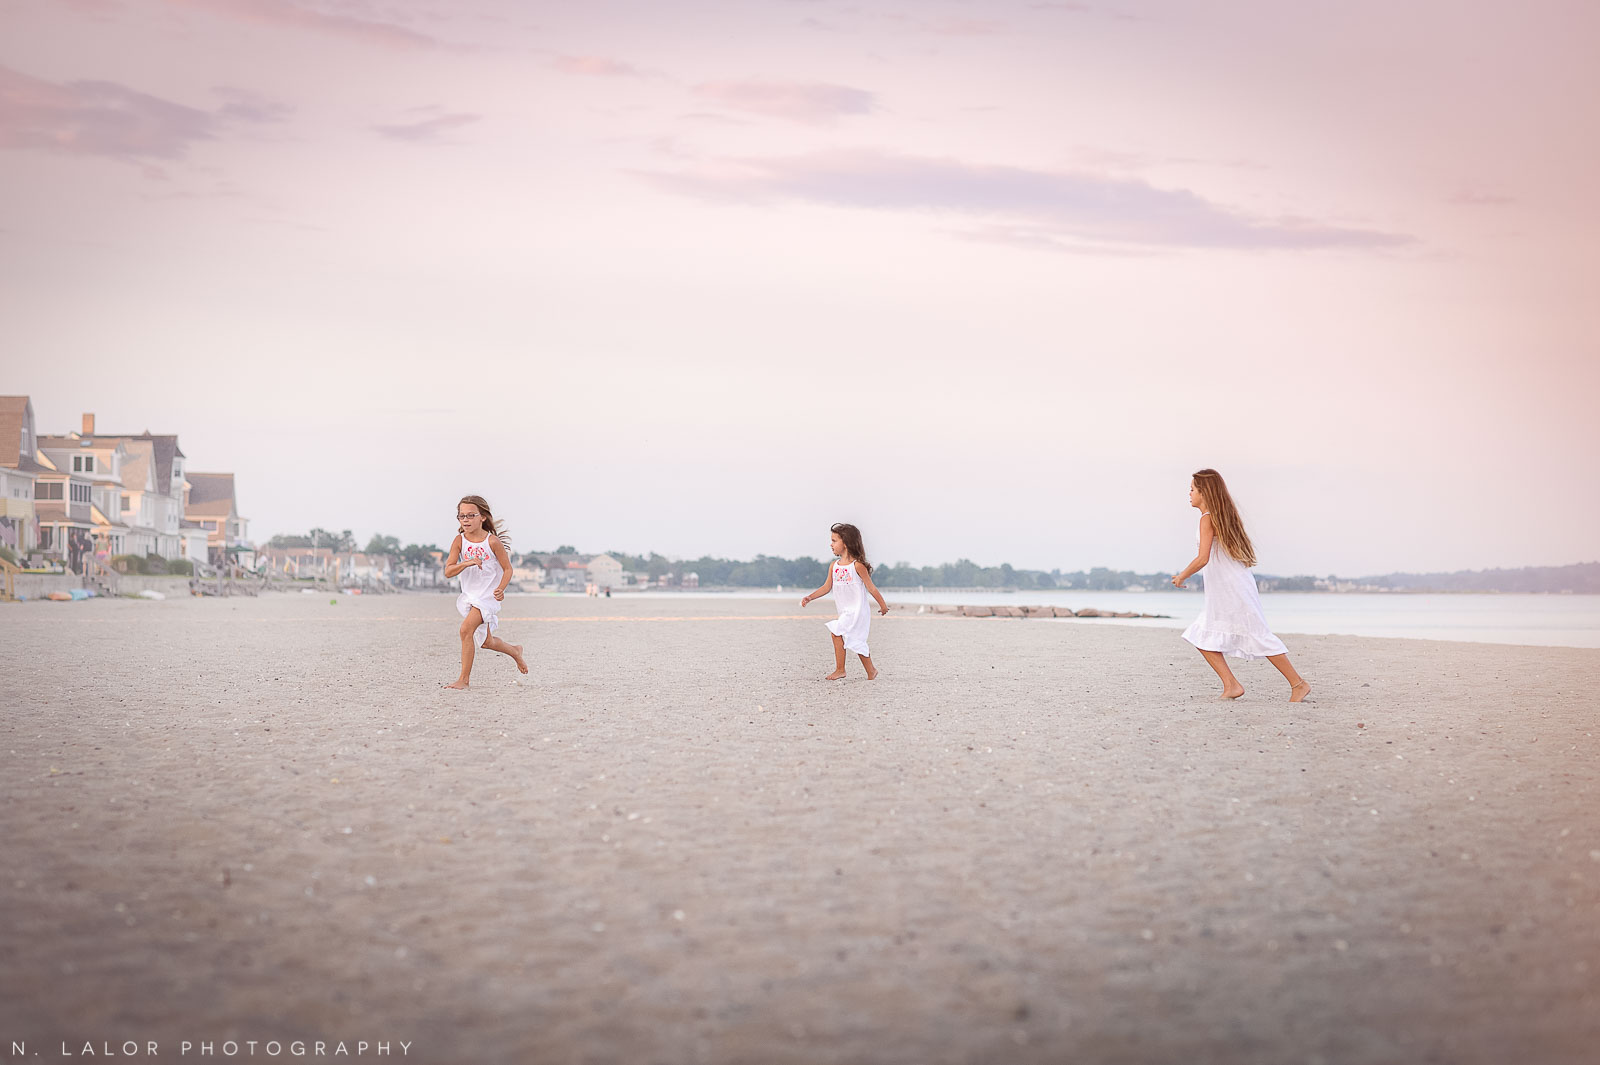 nlalor-photography-styled-beach-photo-session-milford-ct-12.jpg